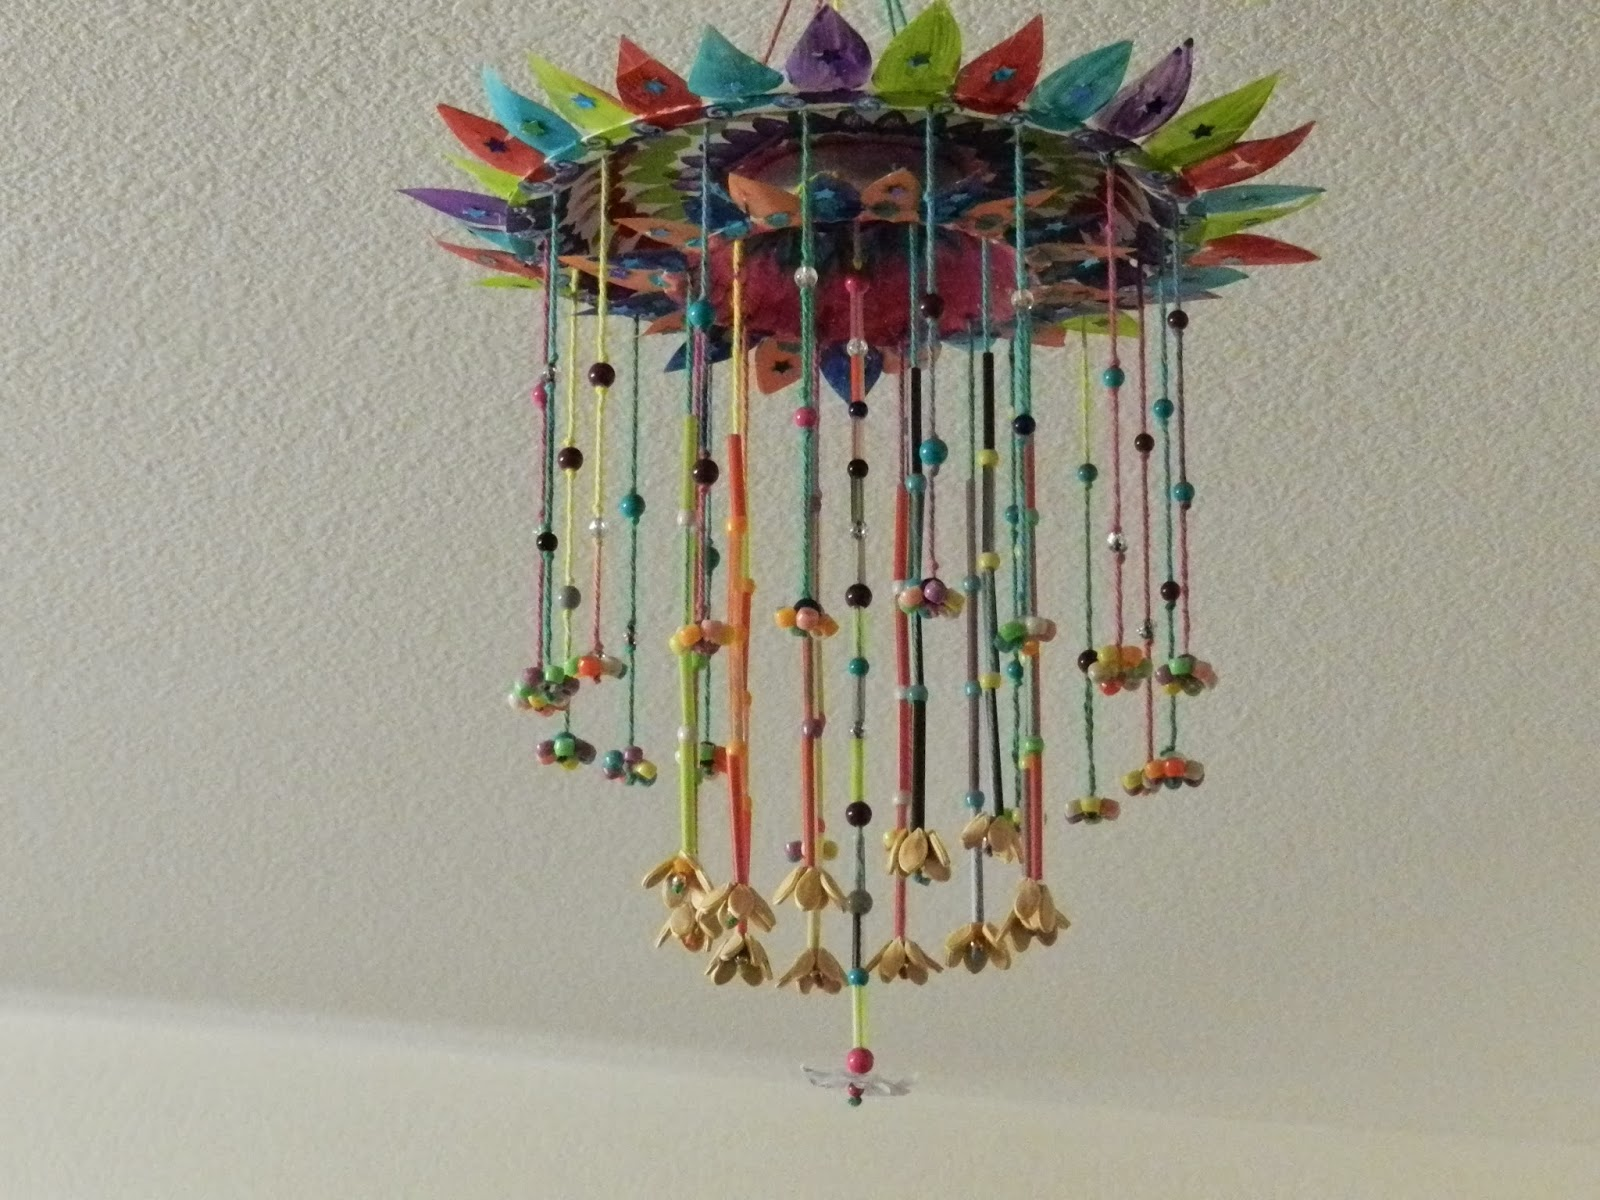 Creative diy crafts paper plate hanging craft with beads for Creative ideas out of waste